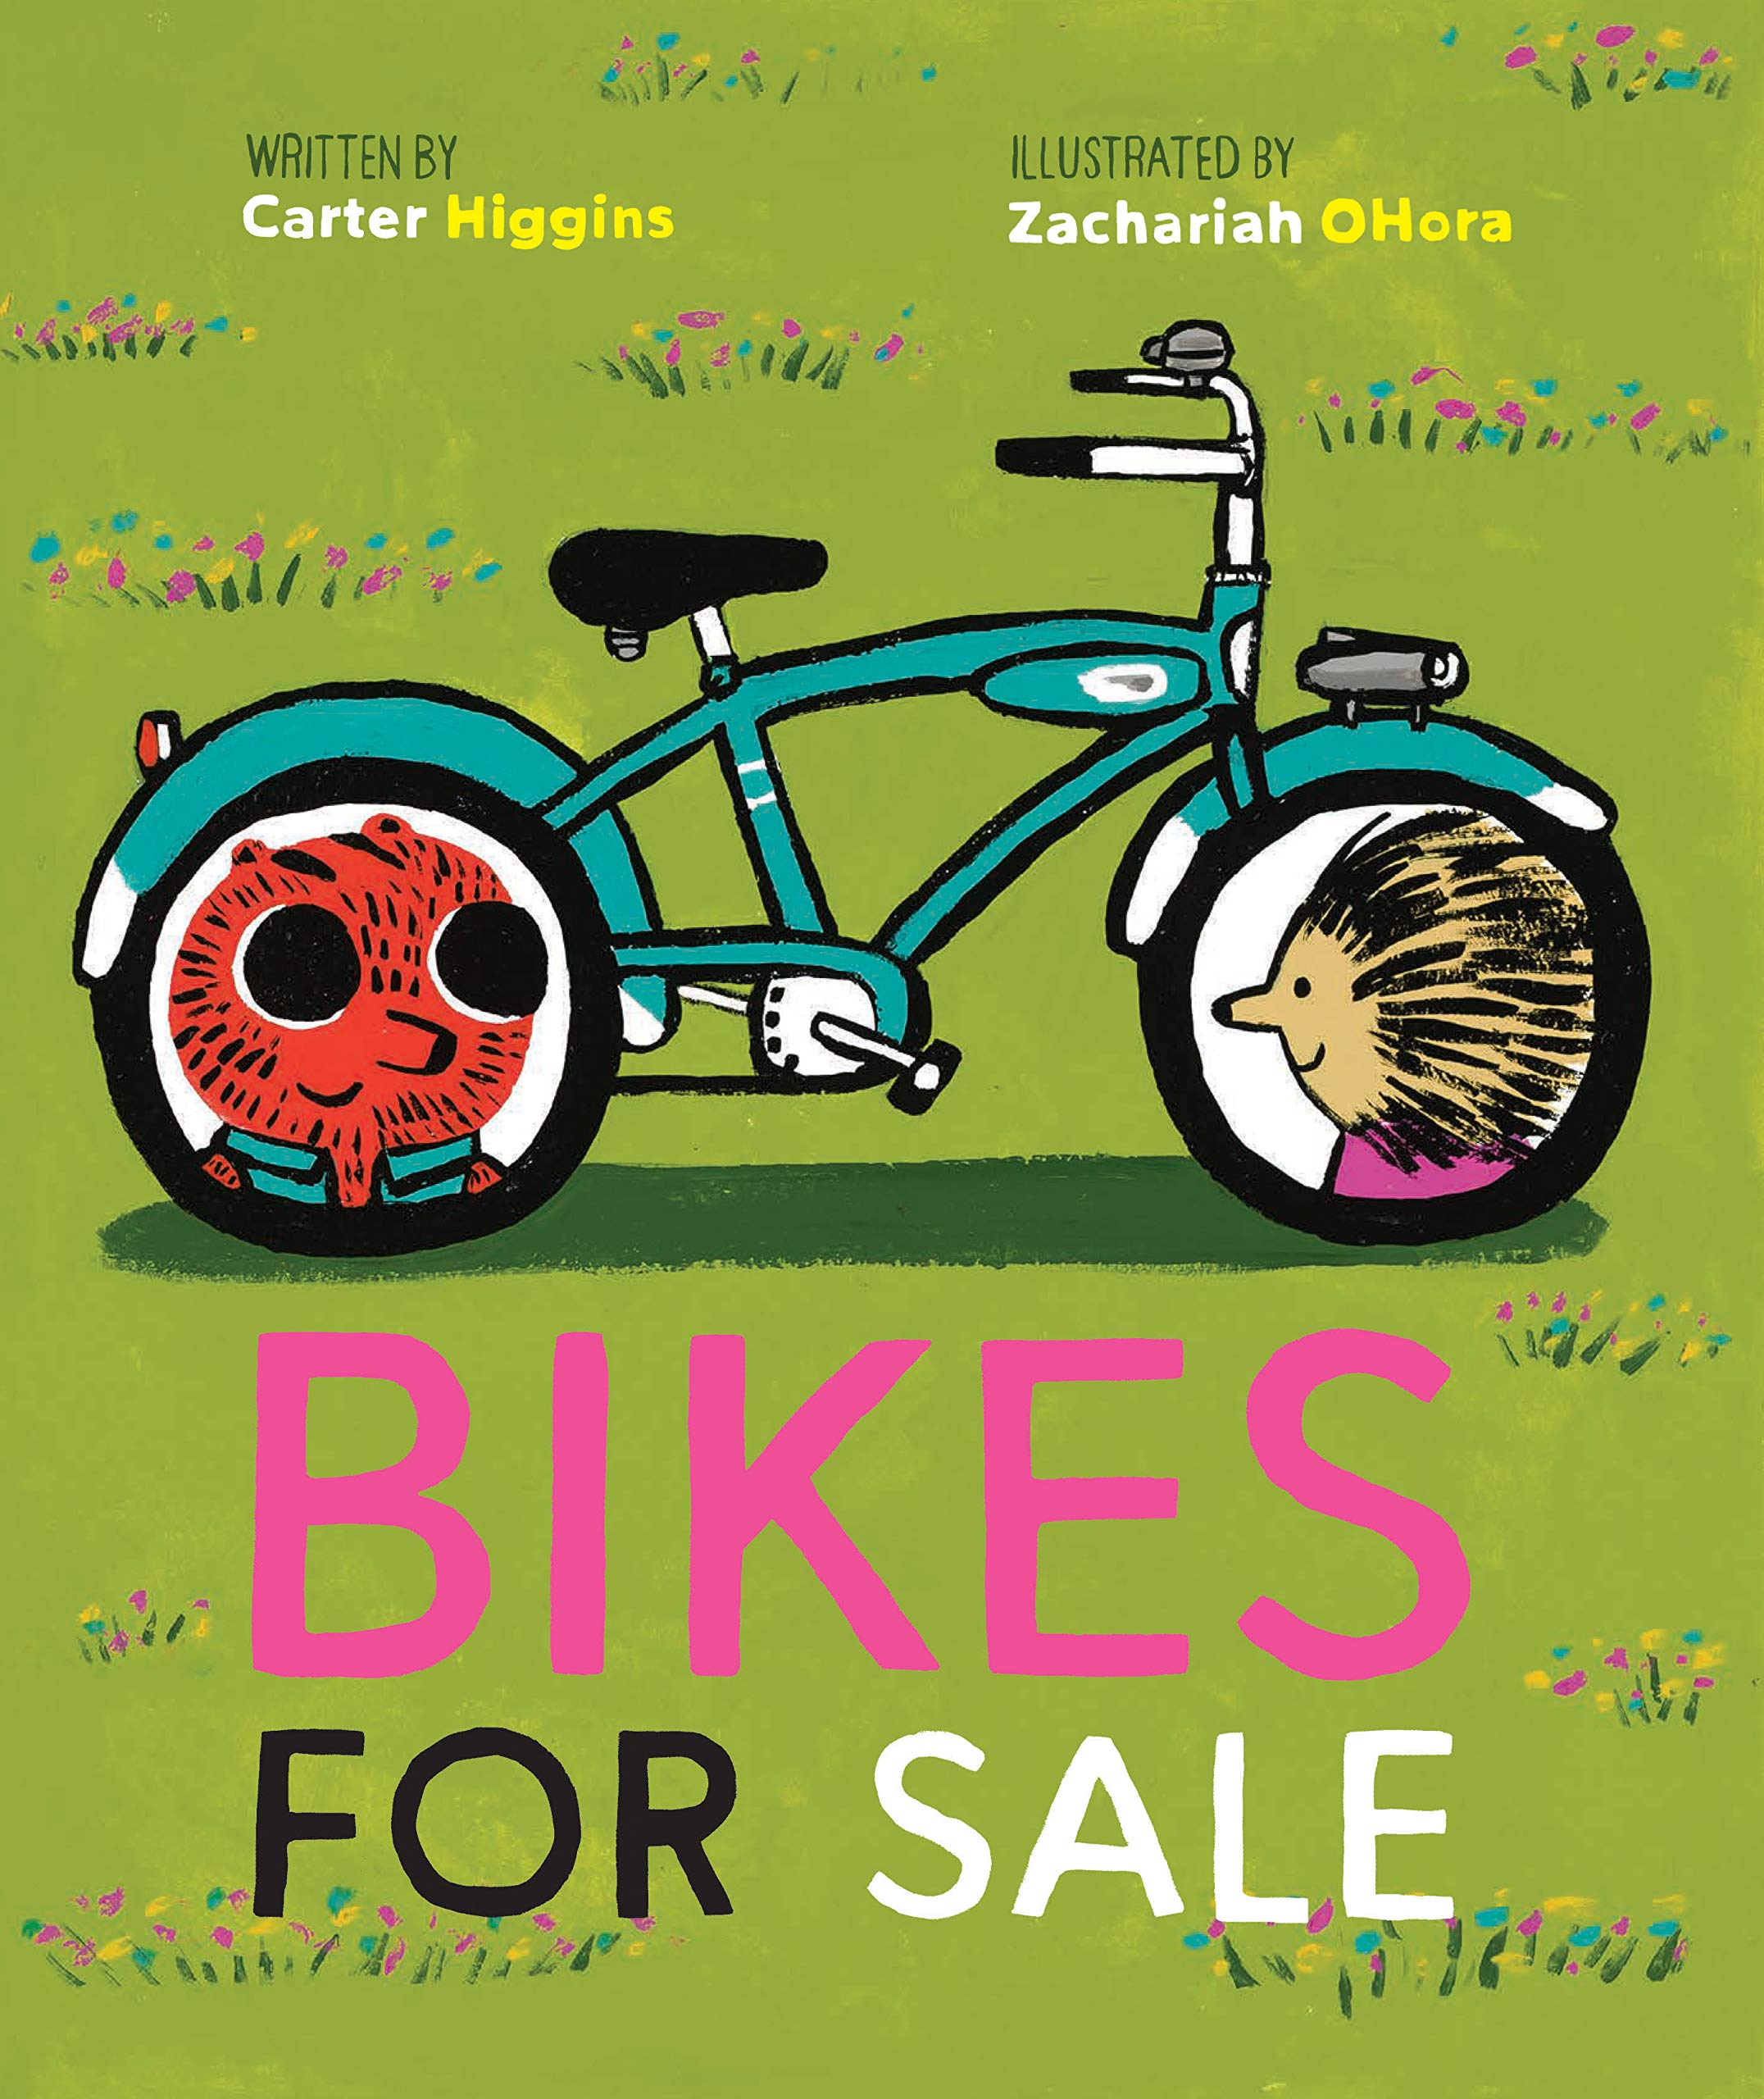 Bikes For Sale By Carter Higgins 04-02-19